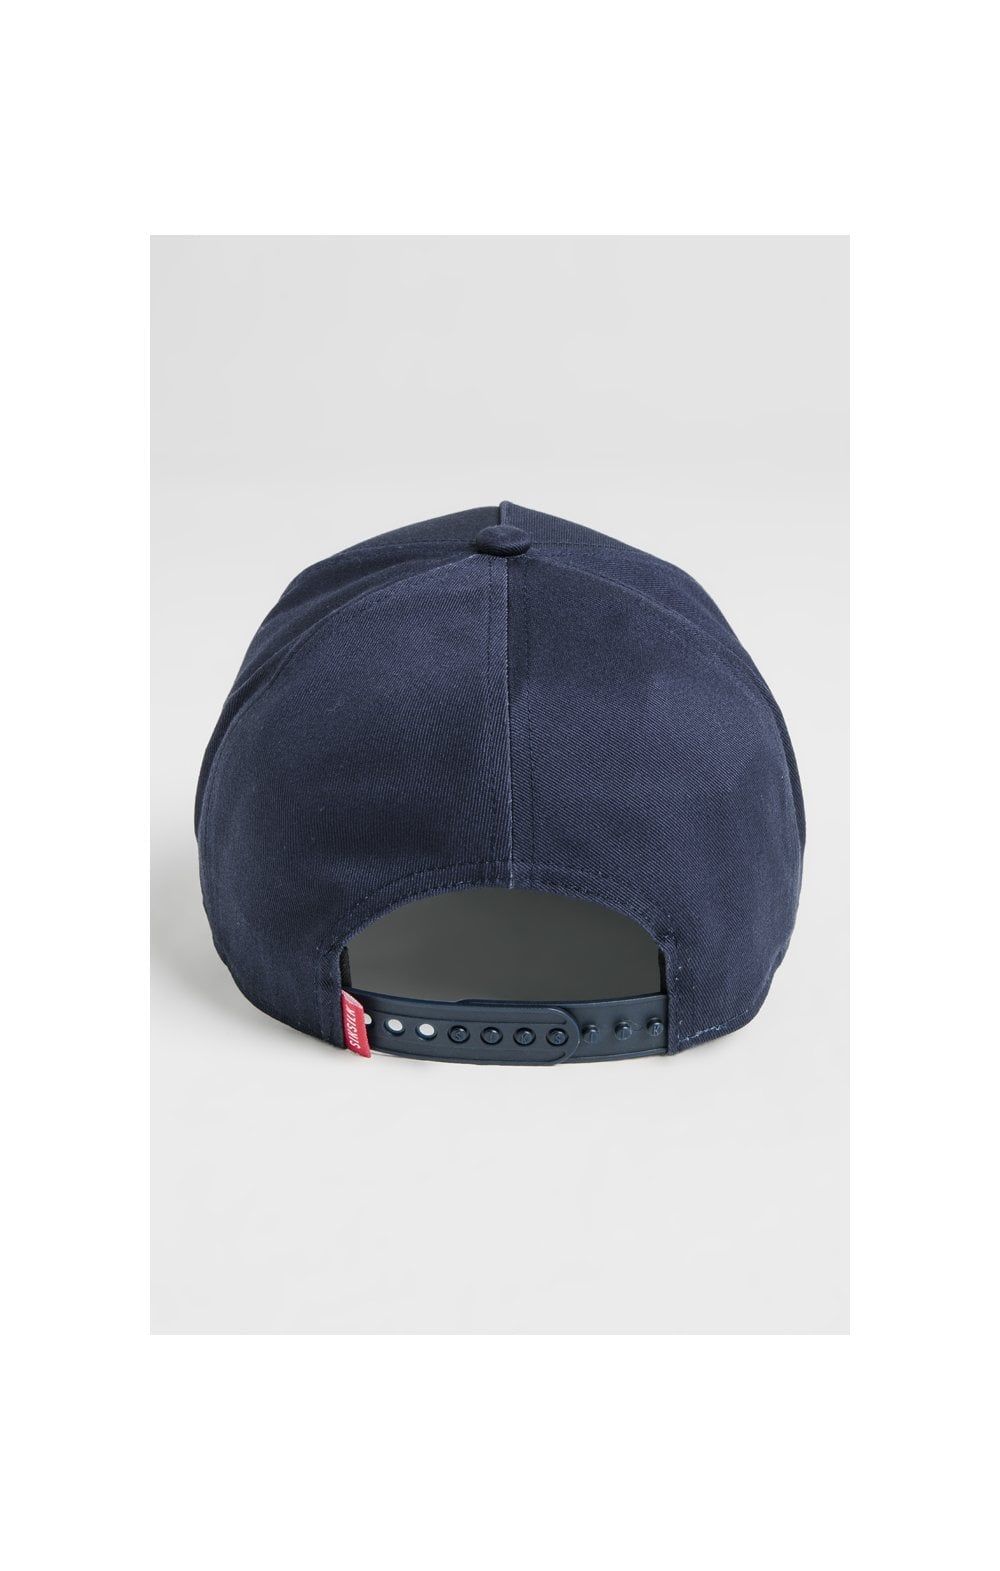 Load image into Gallery viewer, SikSilk Patch Full Trucker - Navy (5)